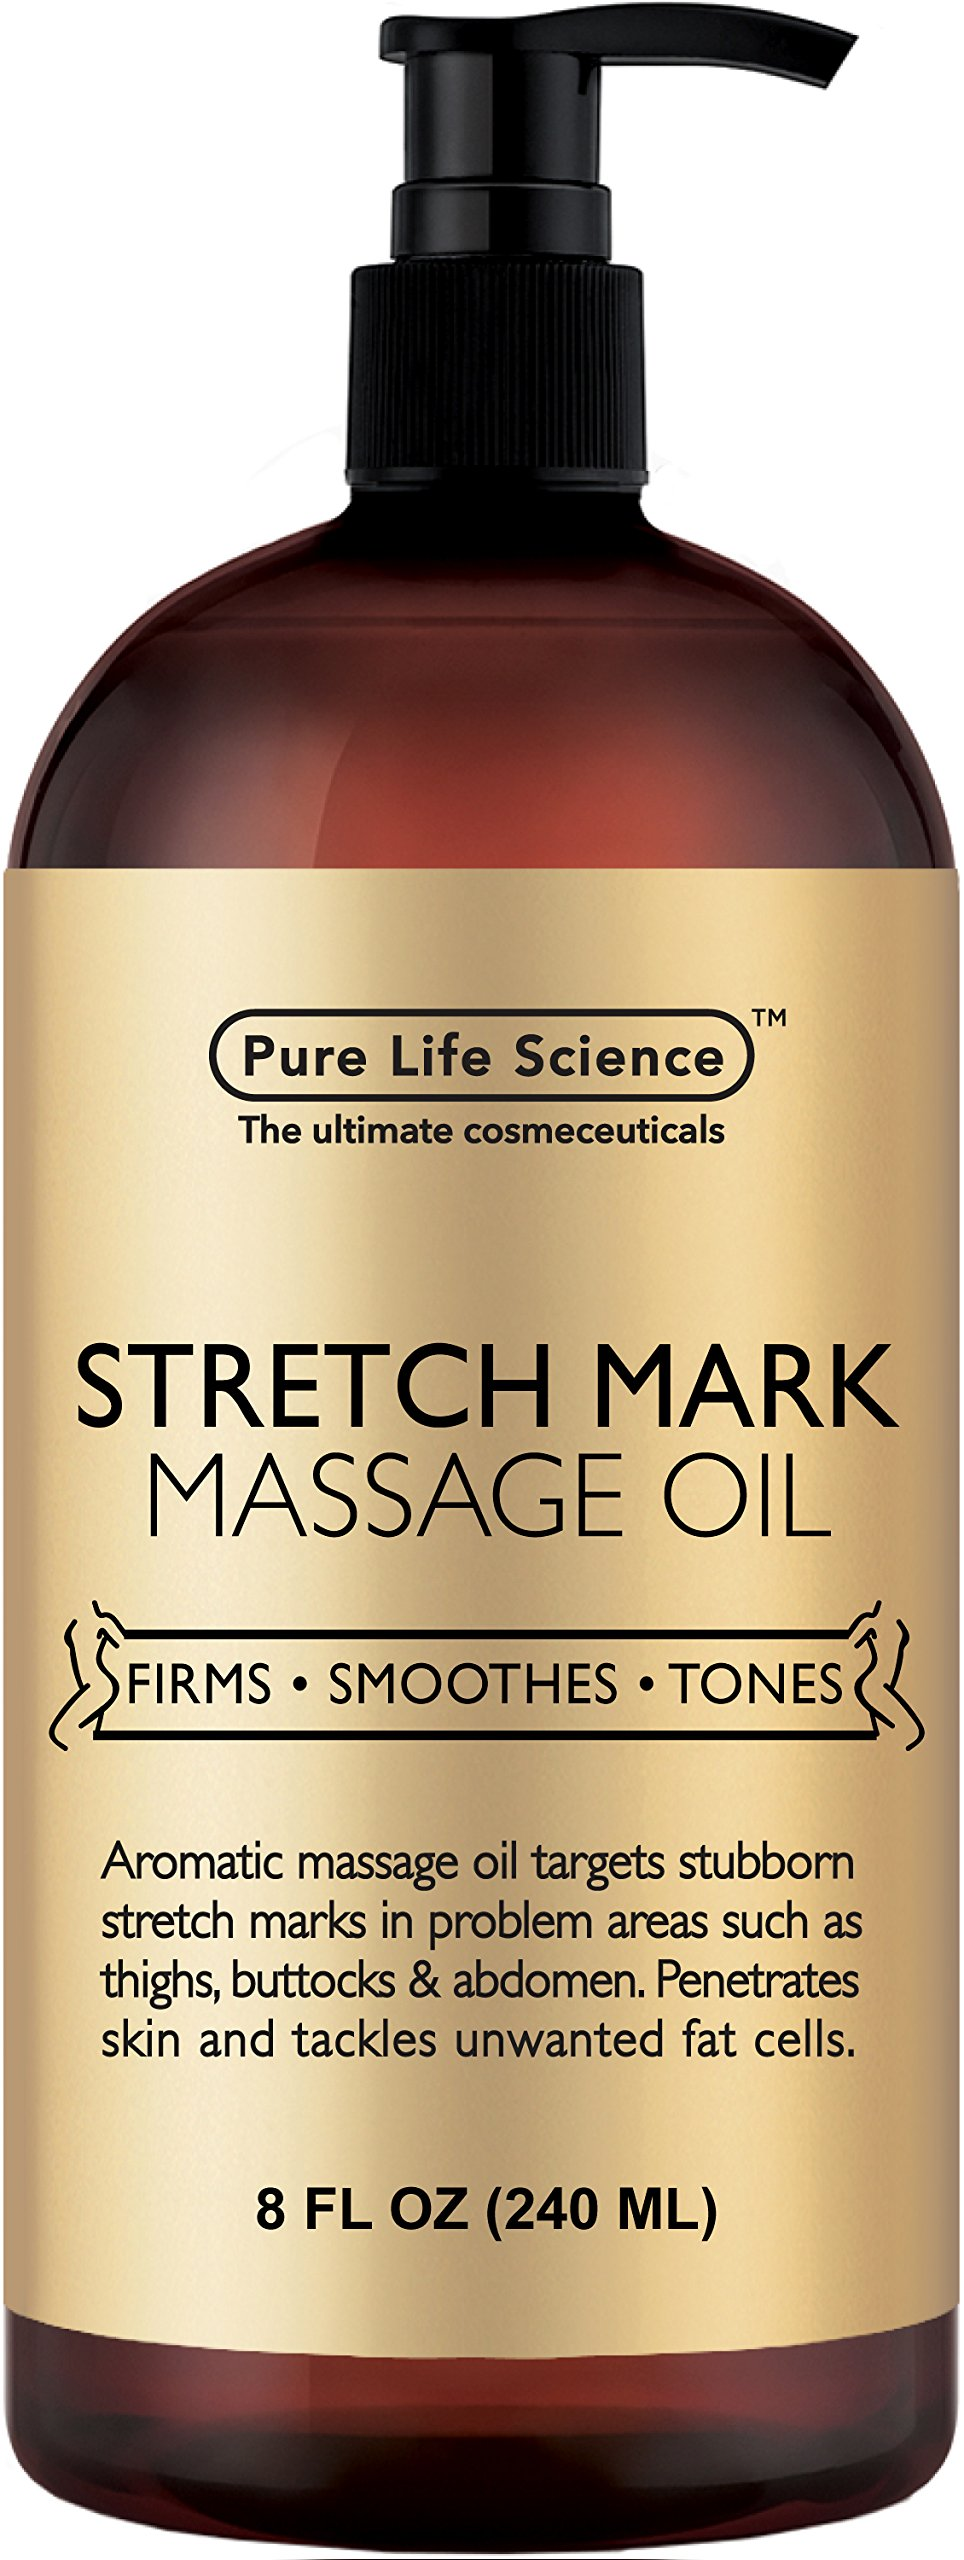 Anti Stretch Marks Massage Oil – All Natural Ingredients – Penetrates Skin 6X Deeper Than Stretch Mark Cream - Targets Unwanted Fat Tissues & Improves Skin Firmness - 8 OZ by PURE PLANT HOME (Image #1)